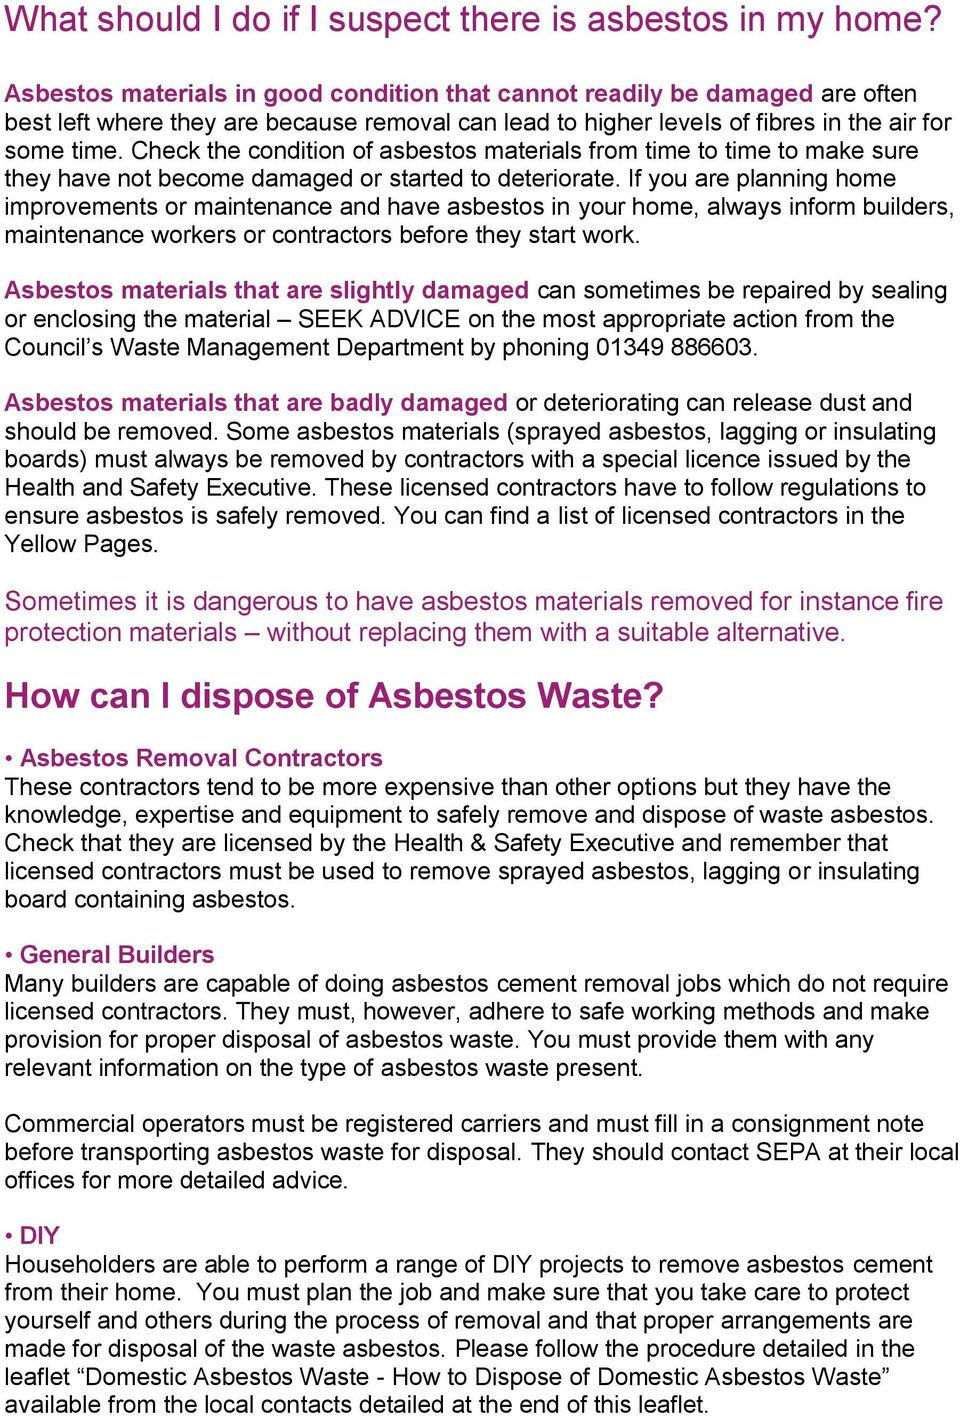 Check the condition of asbestos materials from time to time to make sure they have not become damaged or started to deteriorate.